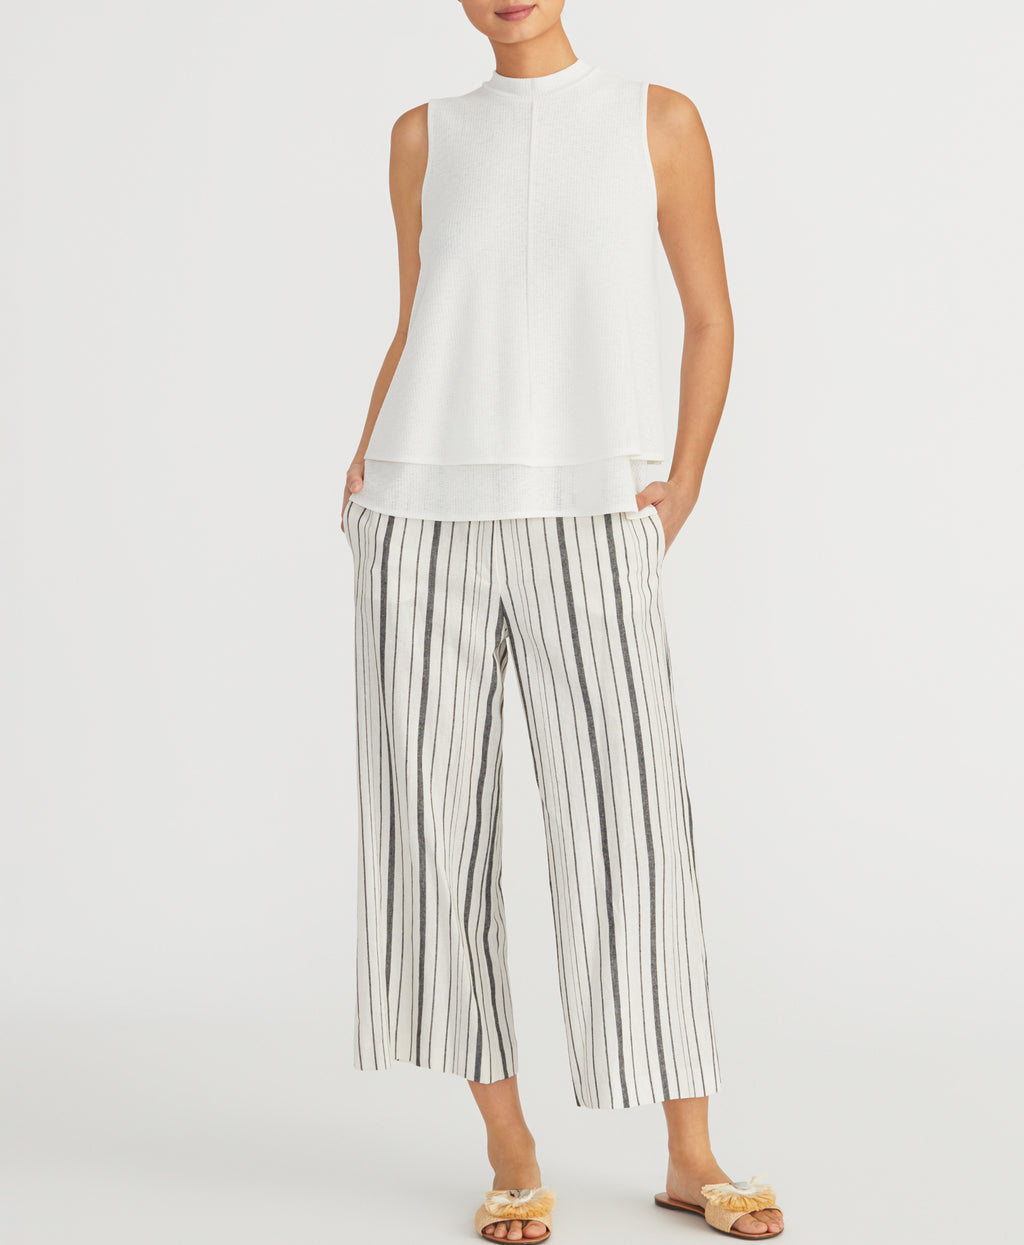 Striped Crop Pant | Striped Crop Pant